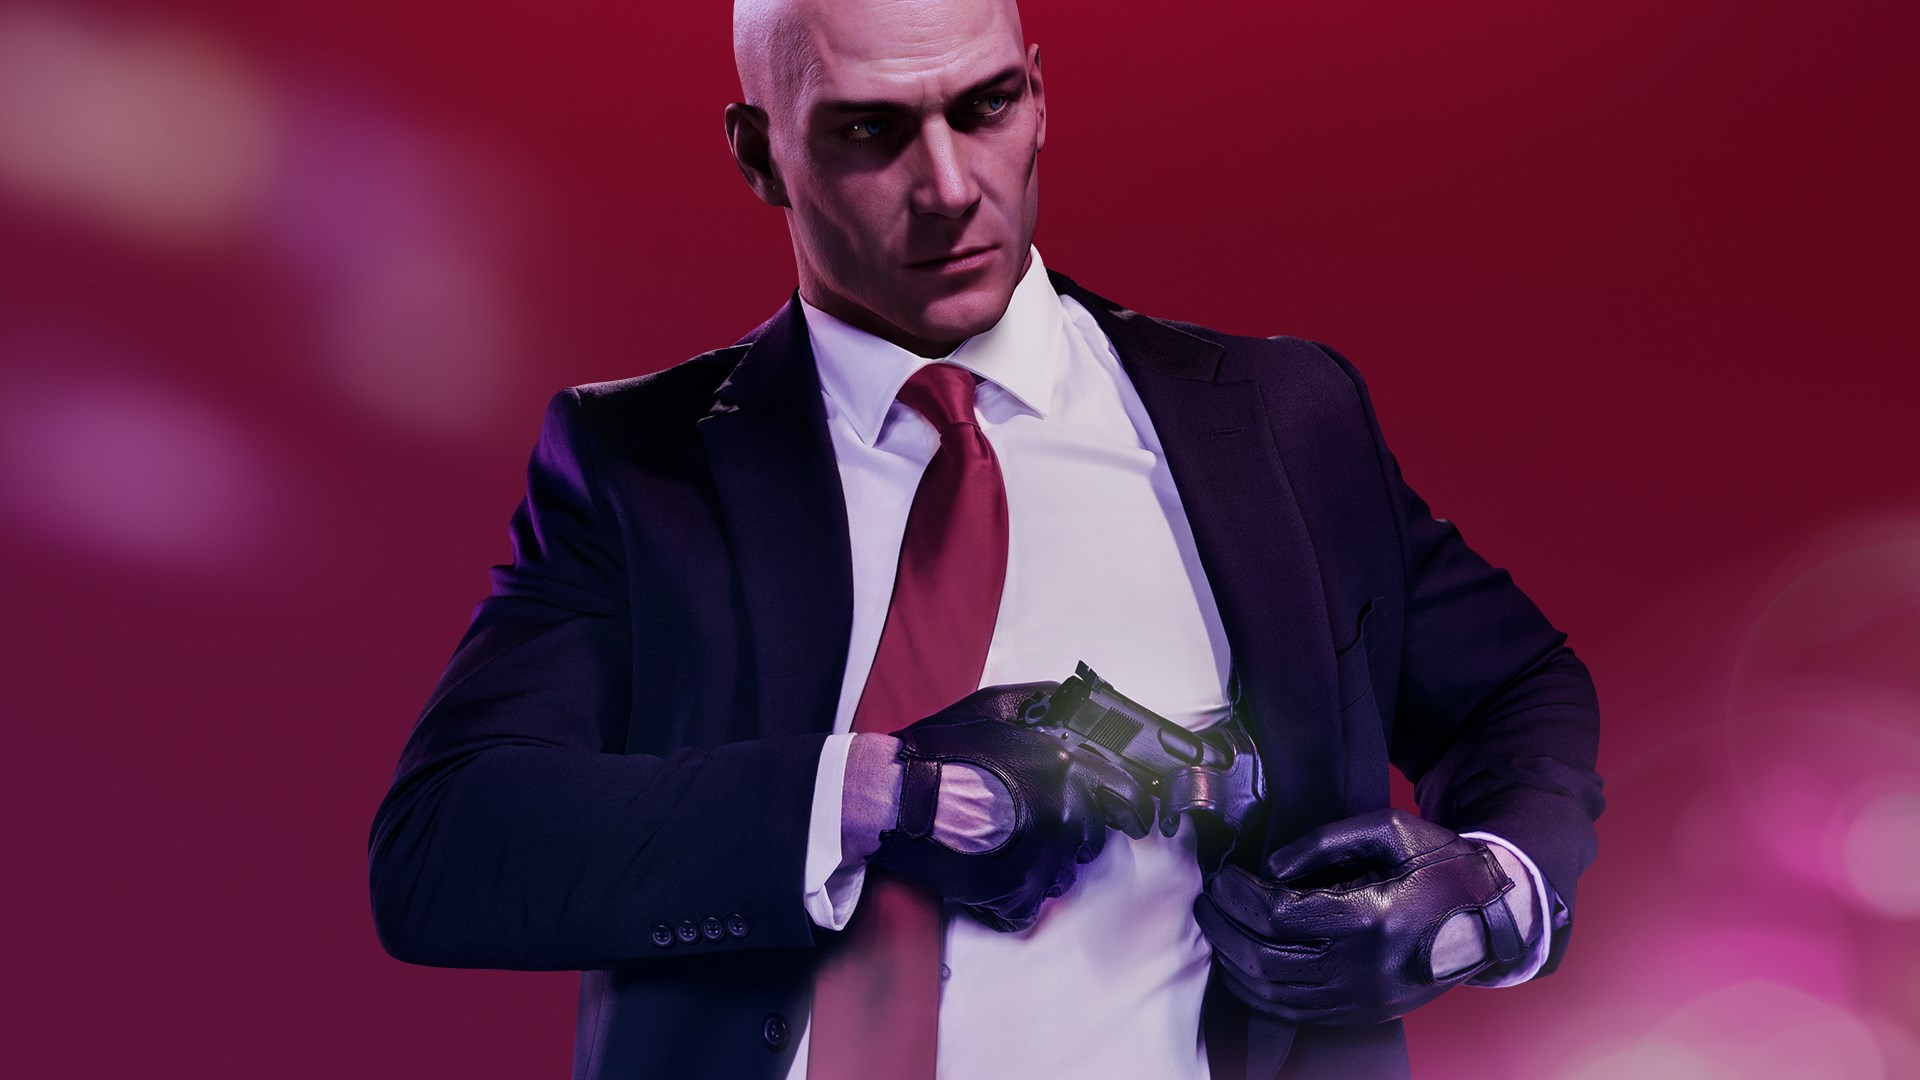 HITMAN 3 Access Pass: HITMAN 2 Standard